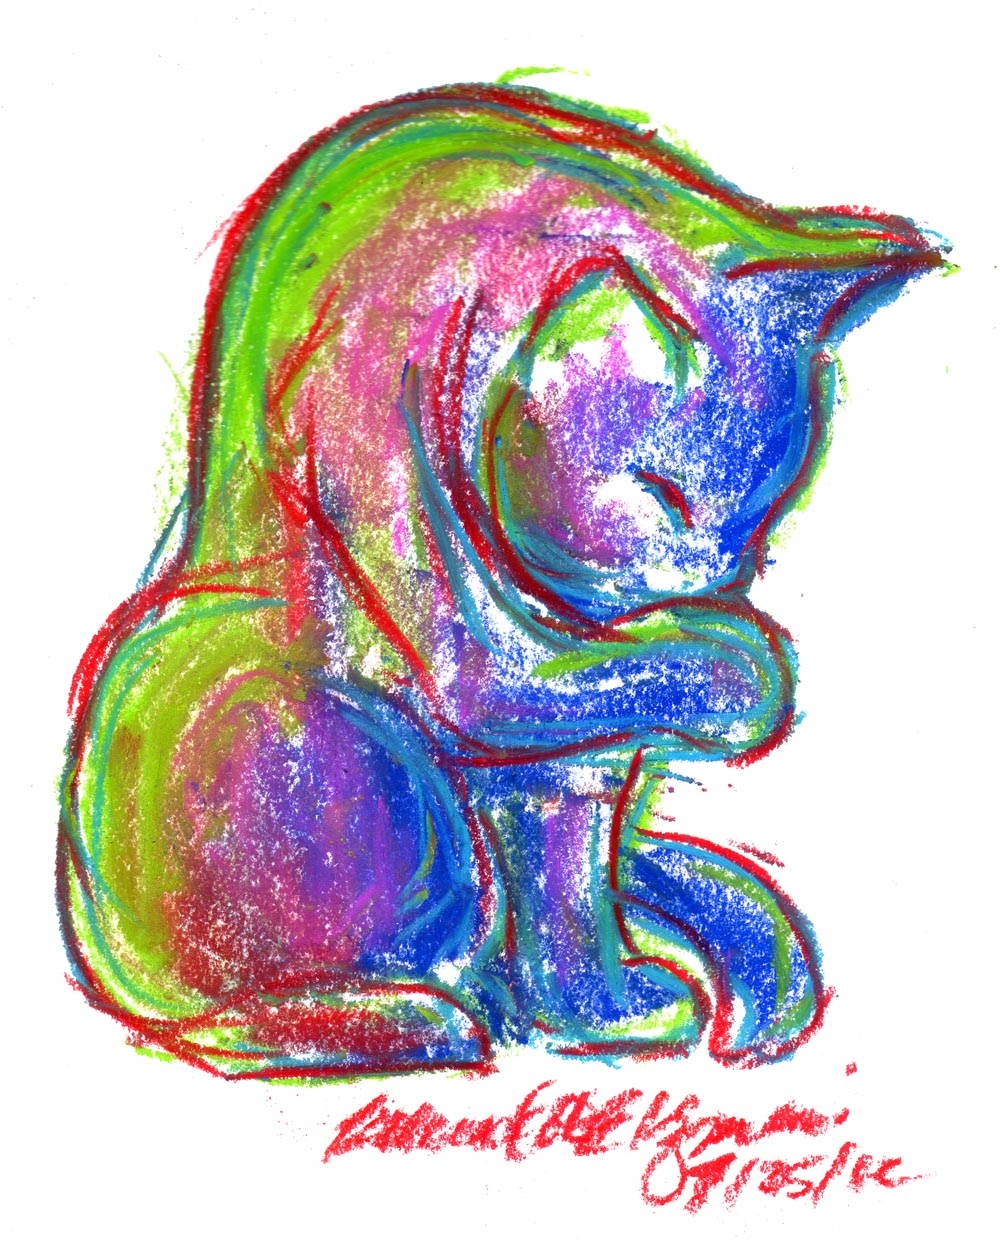 Daily Sketch Reprise: Summer-colored Kitty, 2012